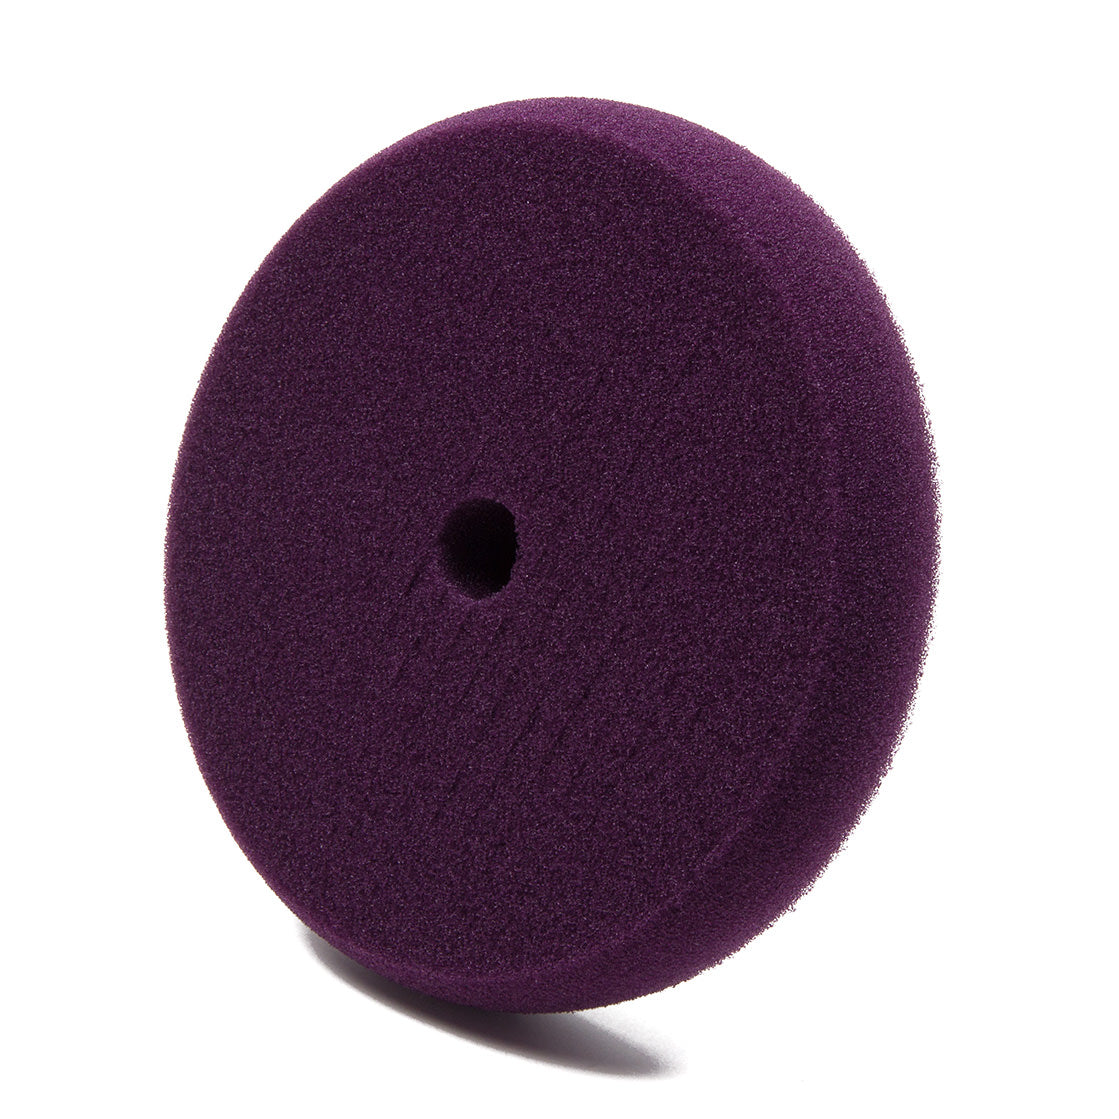 SCHOLL Concepts Spider Polishing Pad